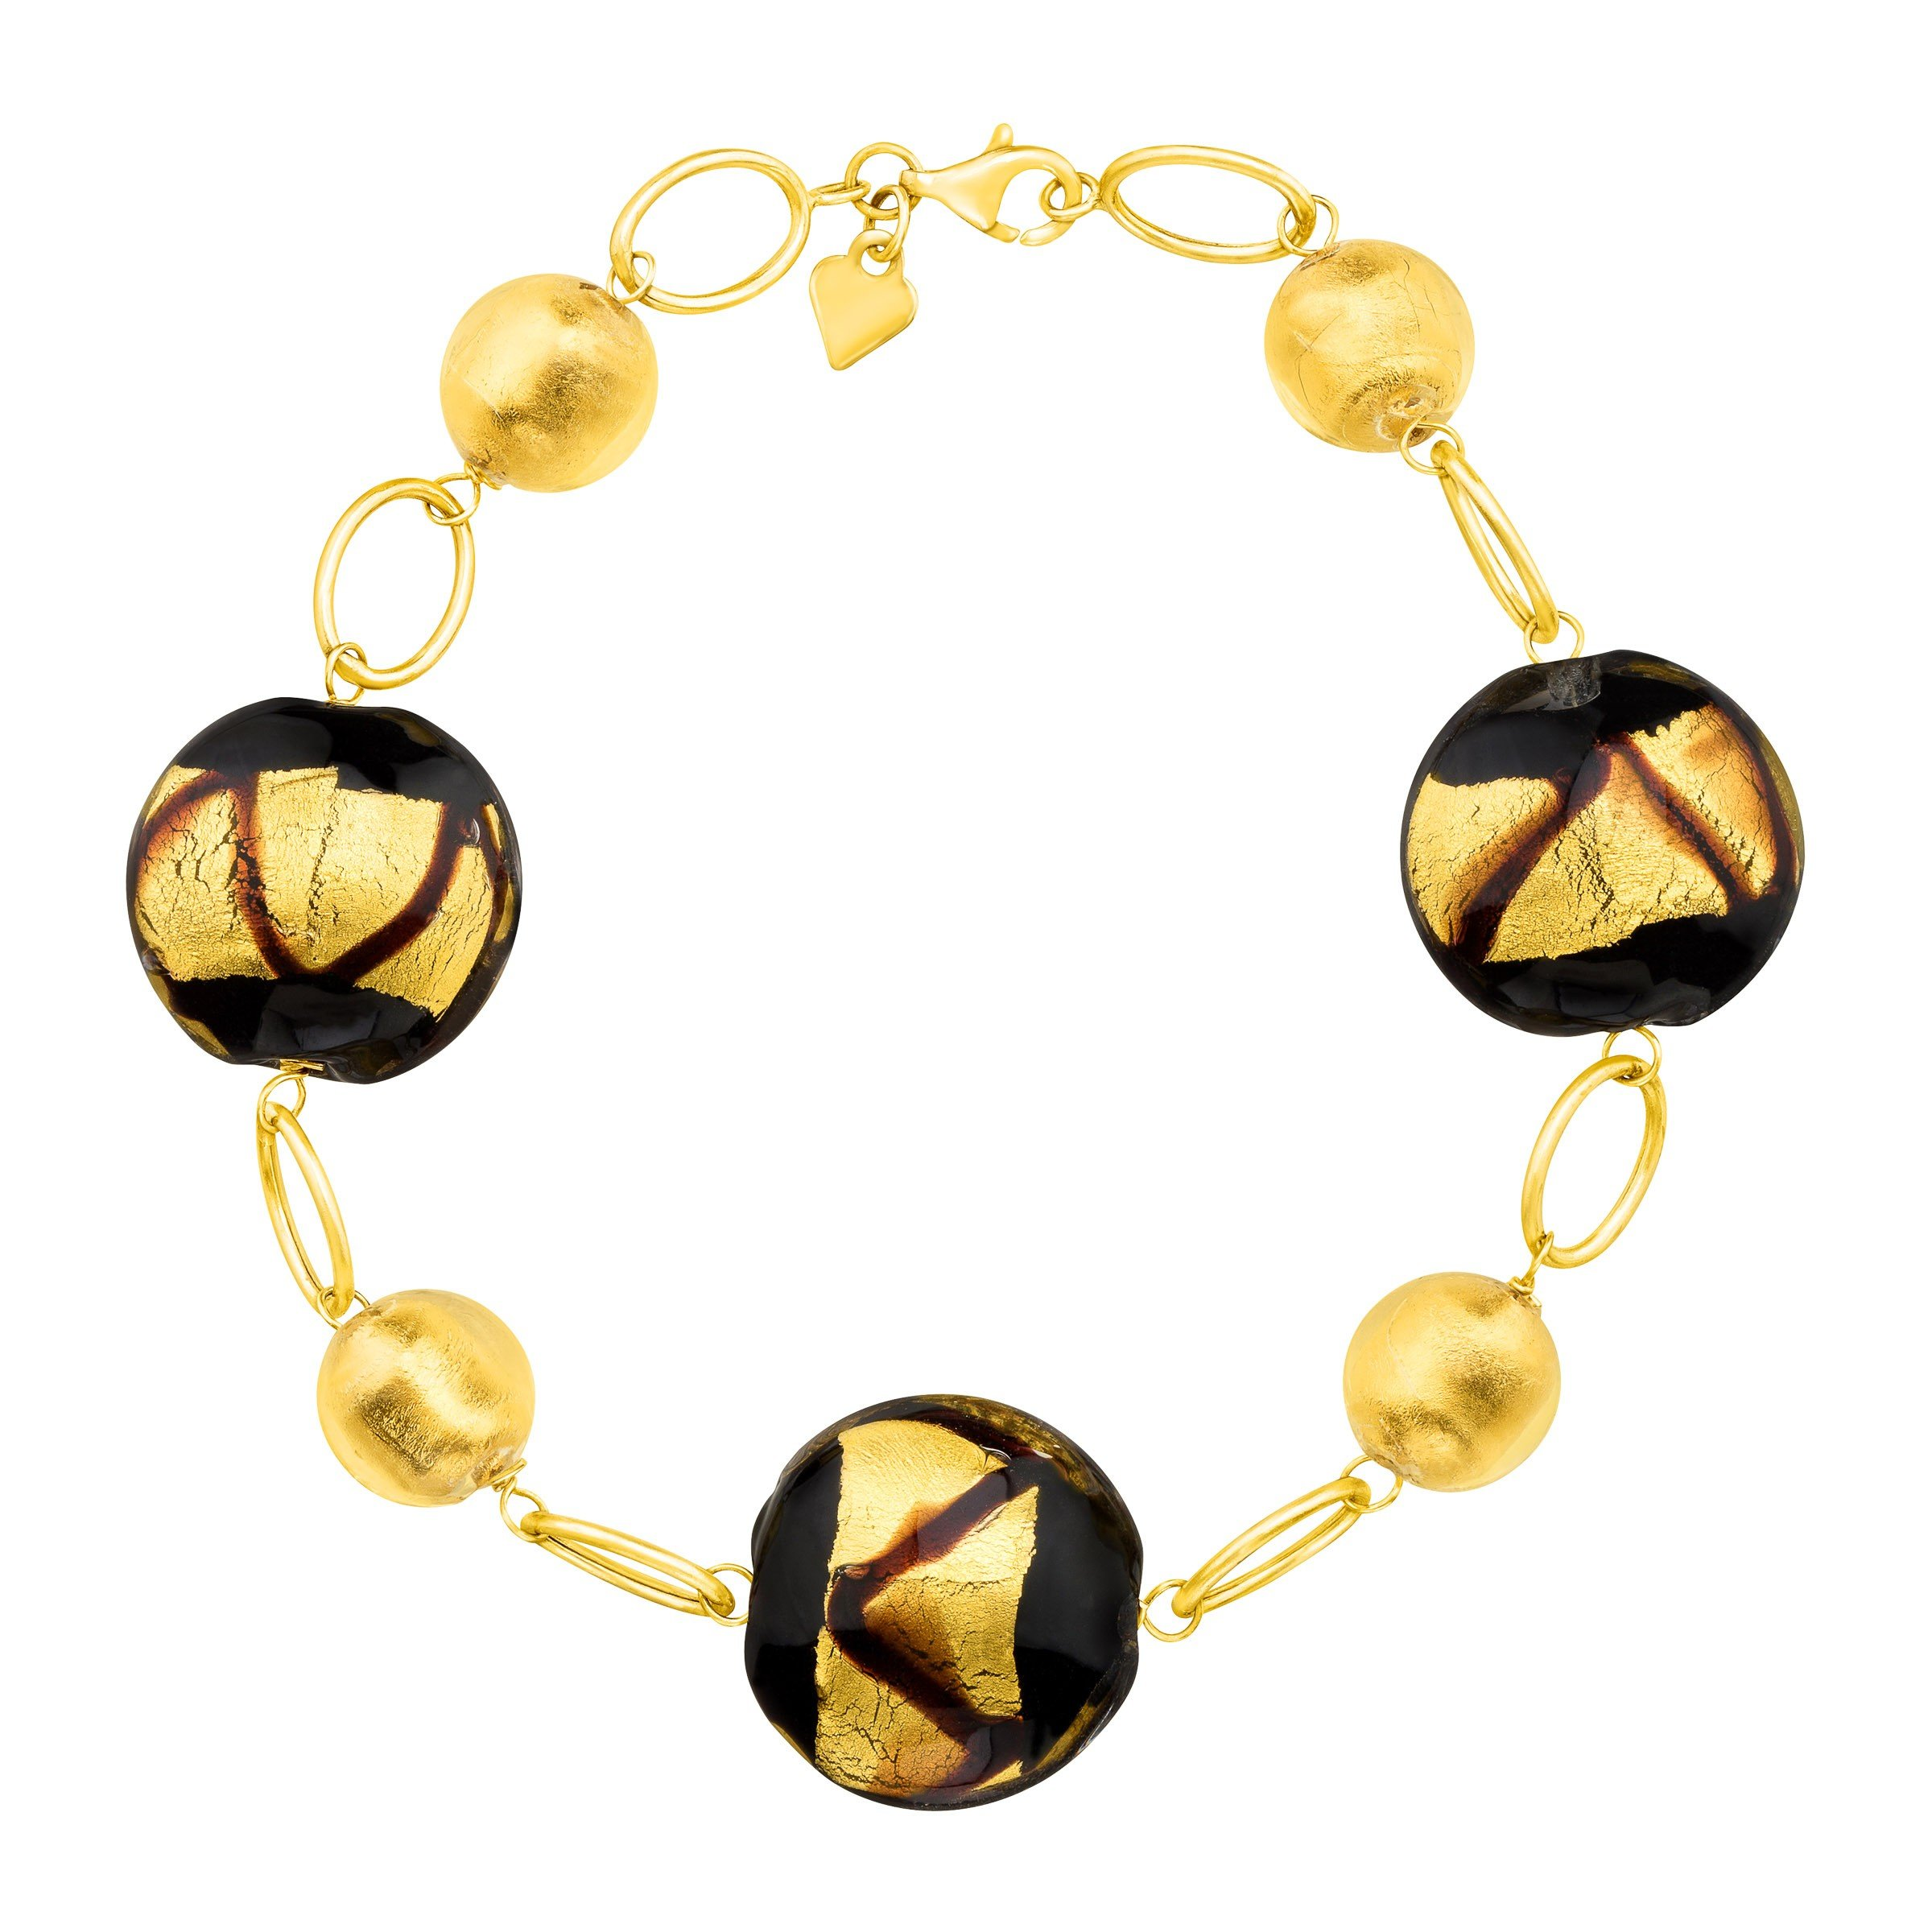 Murano Glass Bead Link Bracelet in 14K Gold